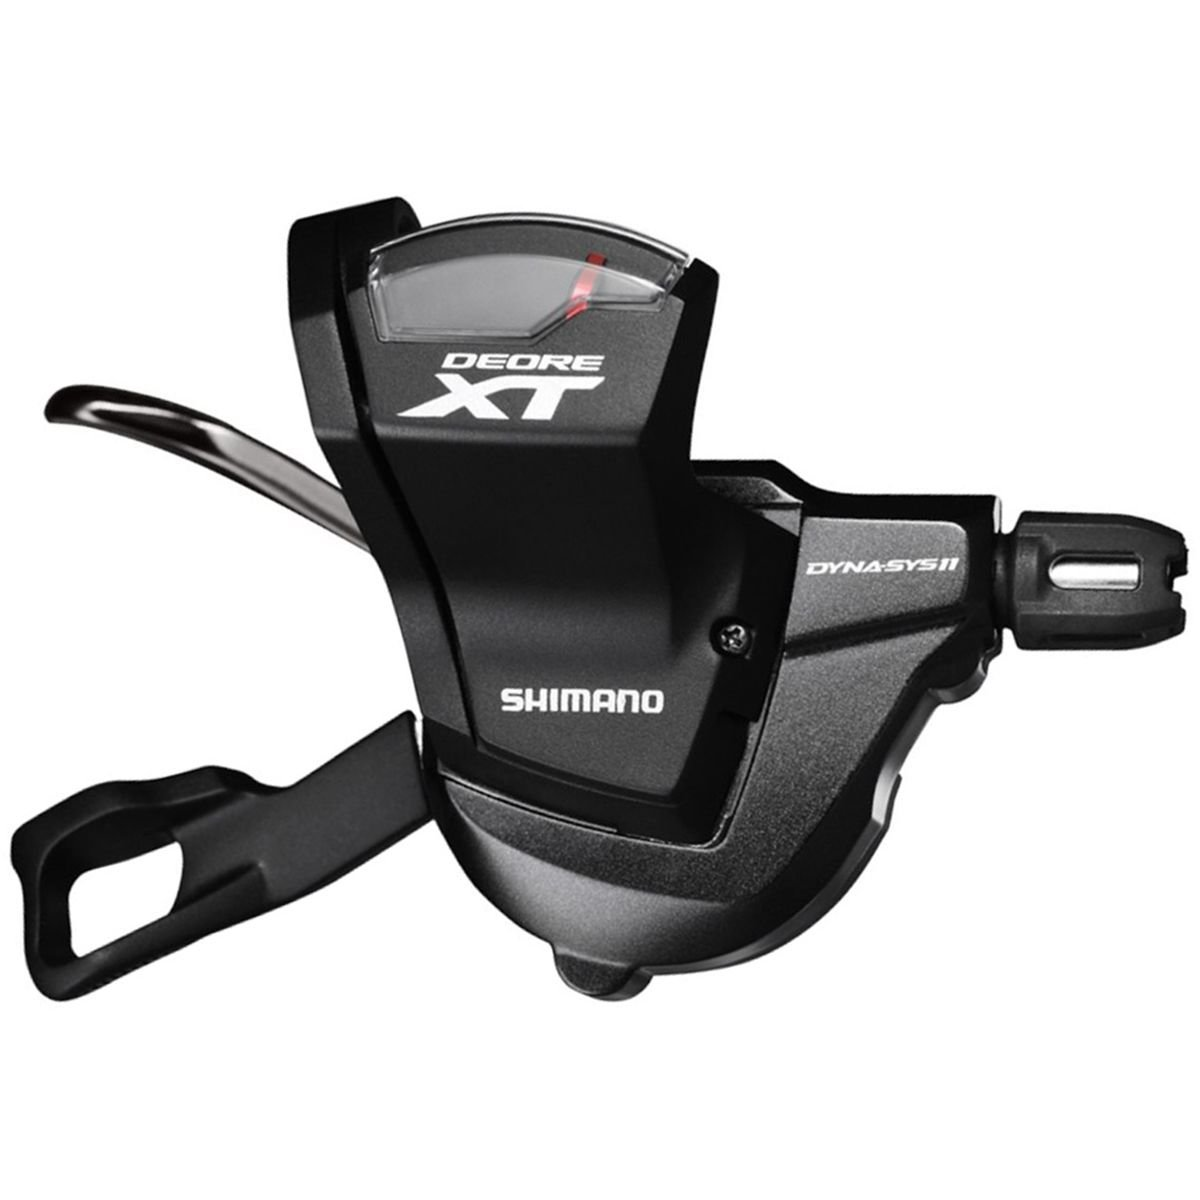 SHIMANO XT SL-M8000 RapidFire Trigger Shifter One Color, Right